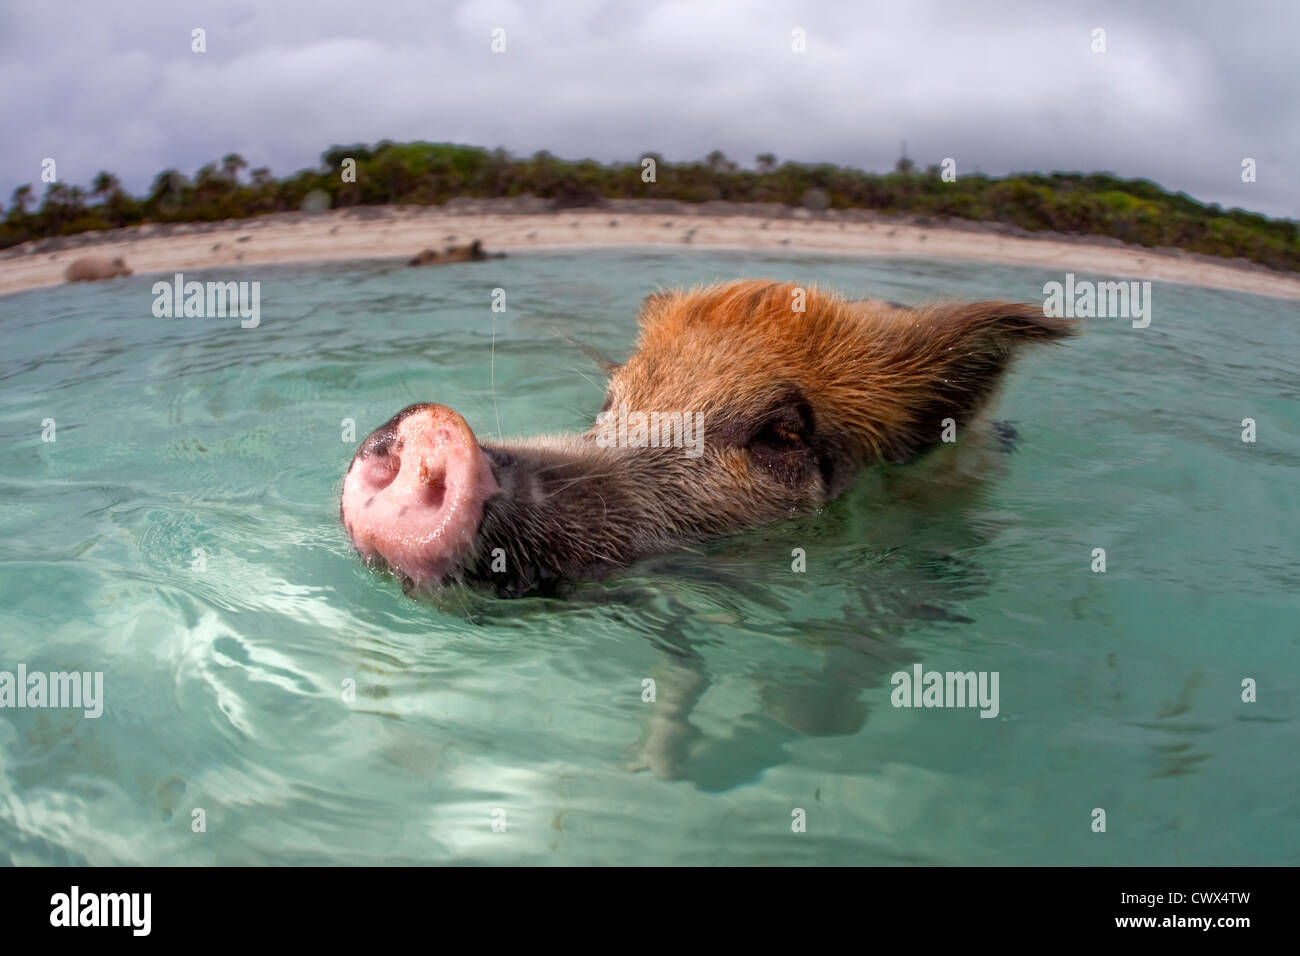 A wild pig swims up to a boat full of tourists at Staniel Cay in the Bahamas. - Stock Image